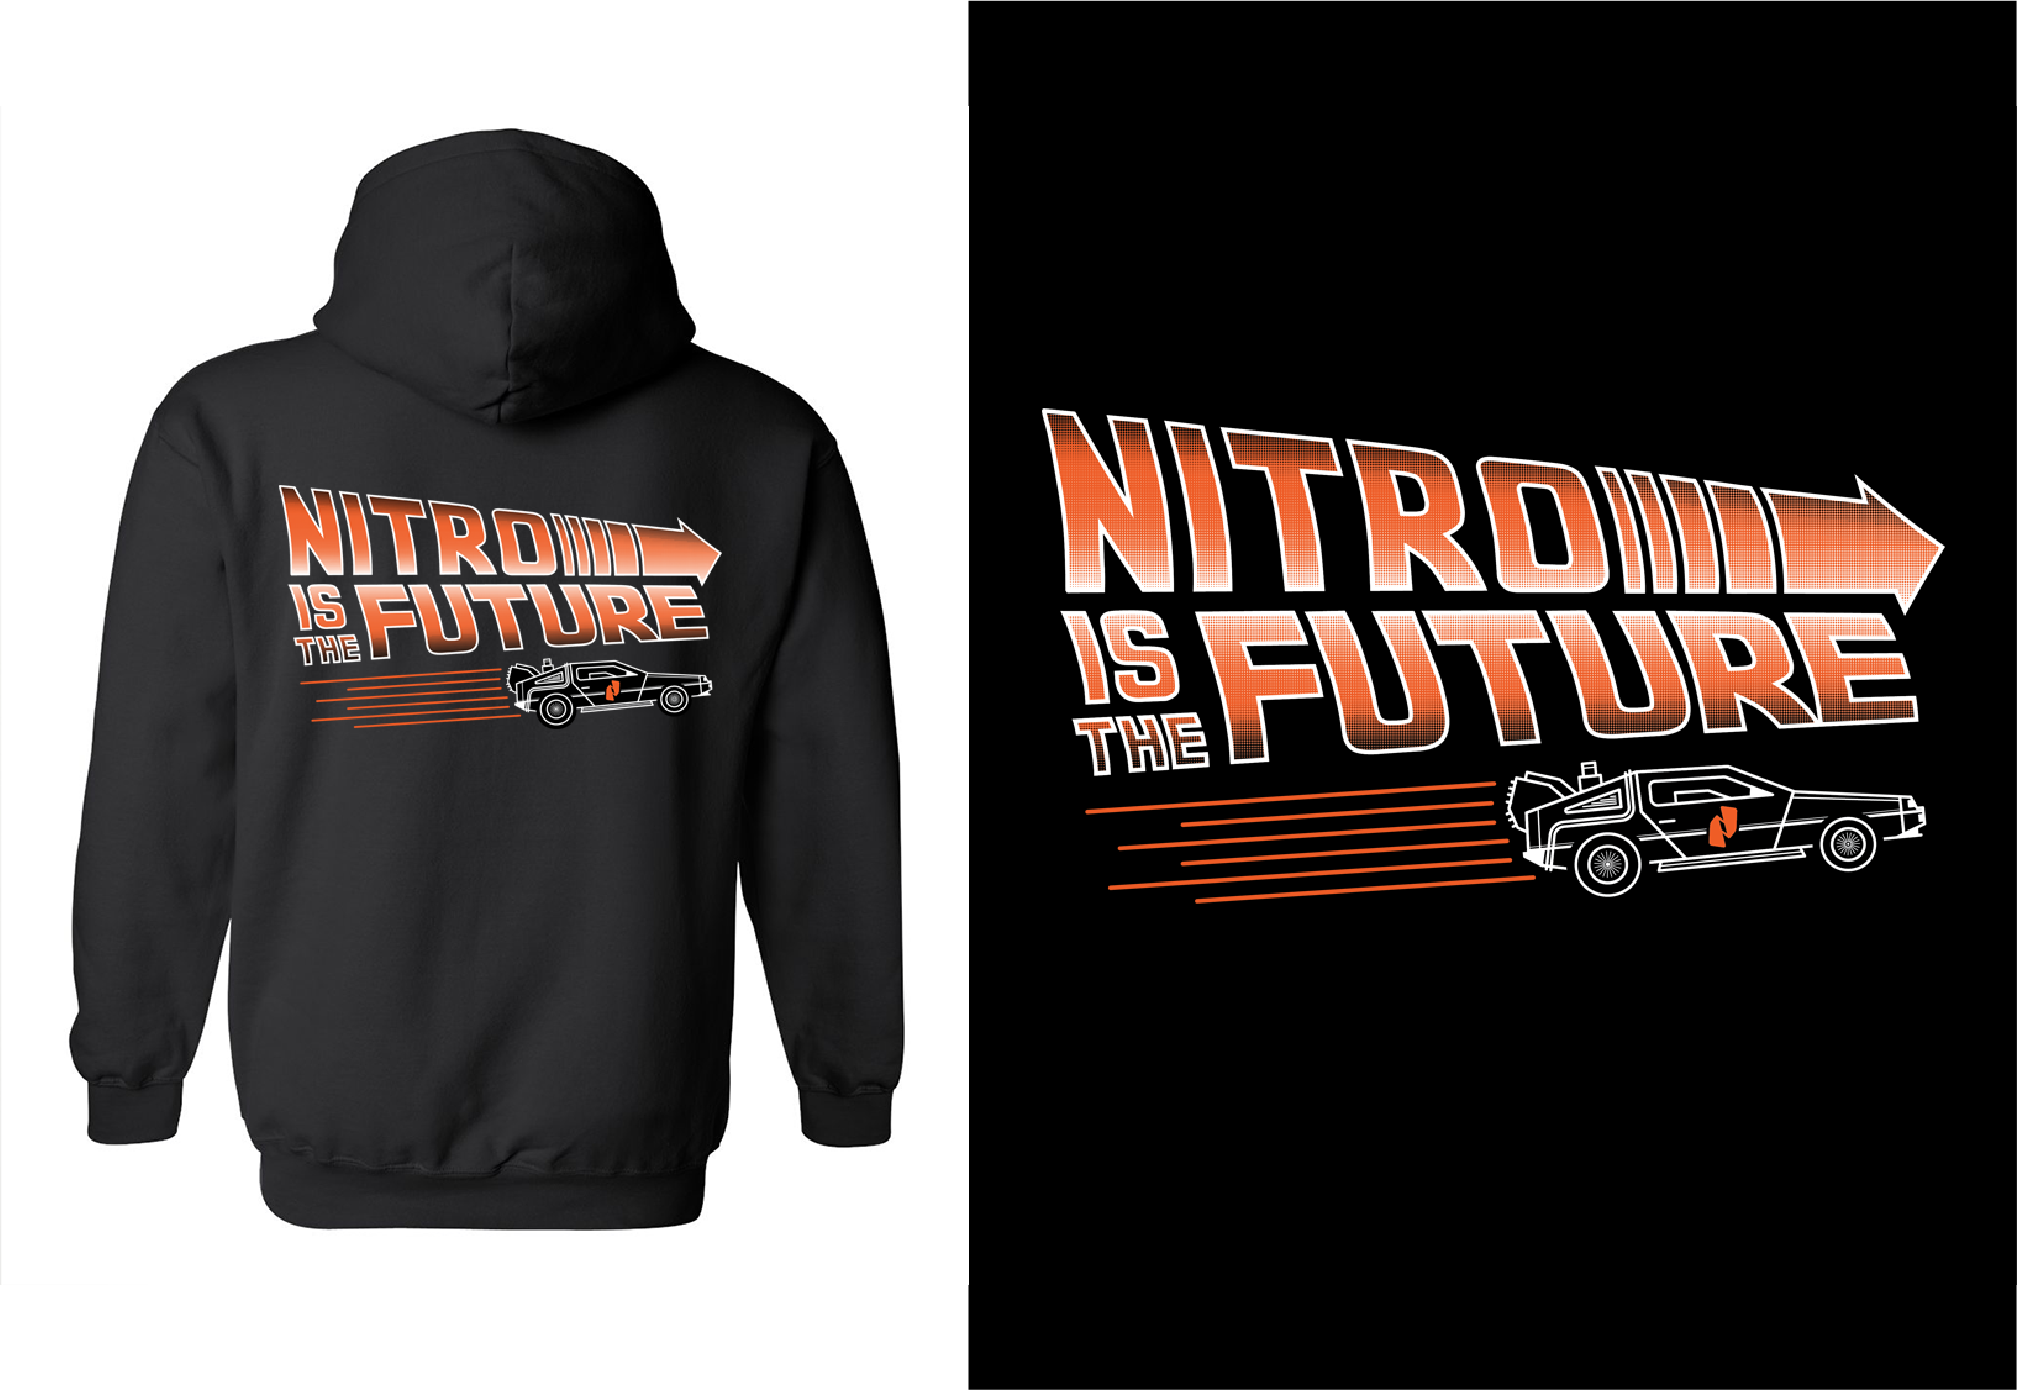 hoodie design-thumbnail copy 7.png